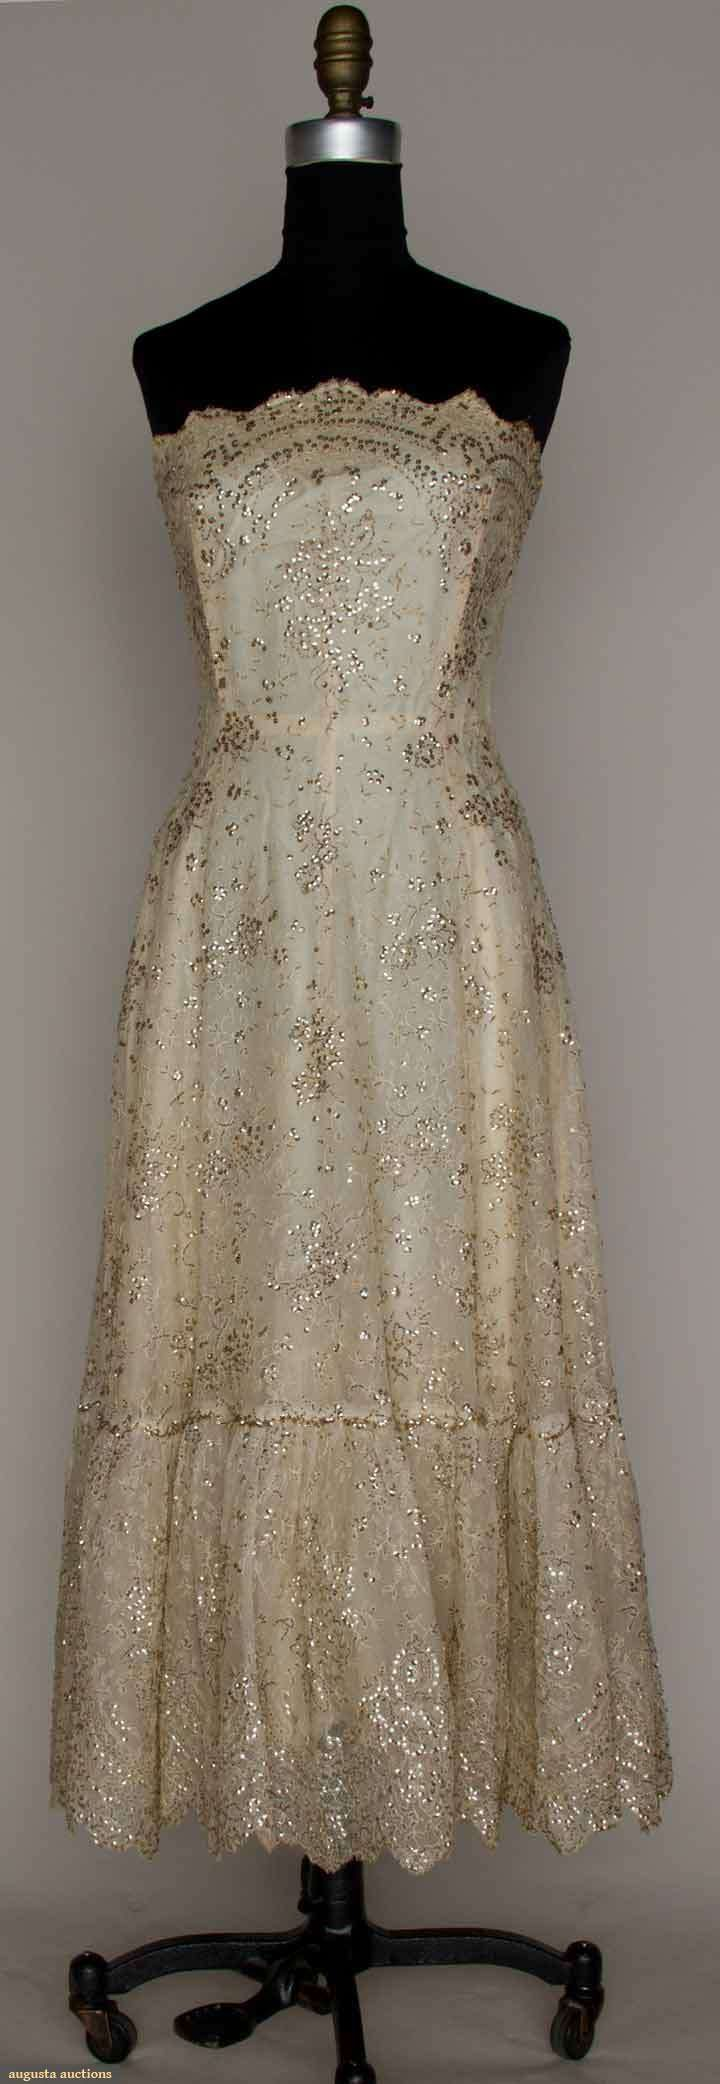 Ball Gowns 1960s   Dress images